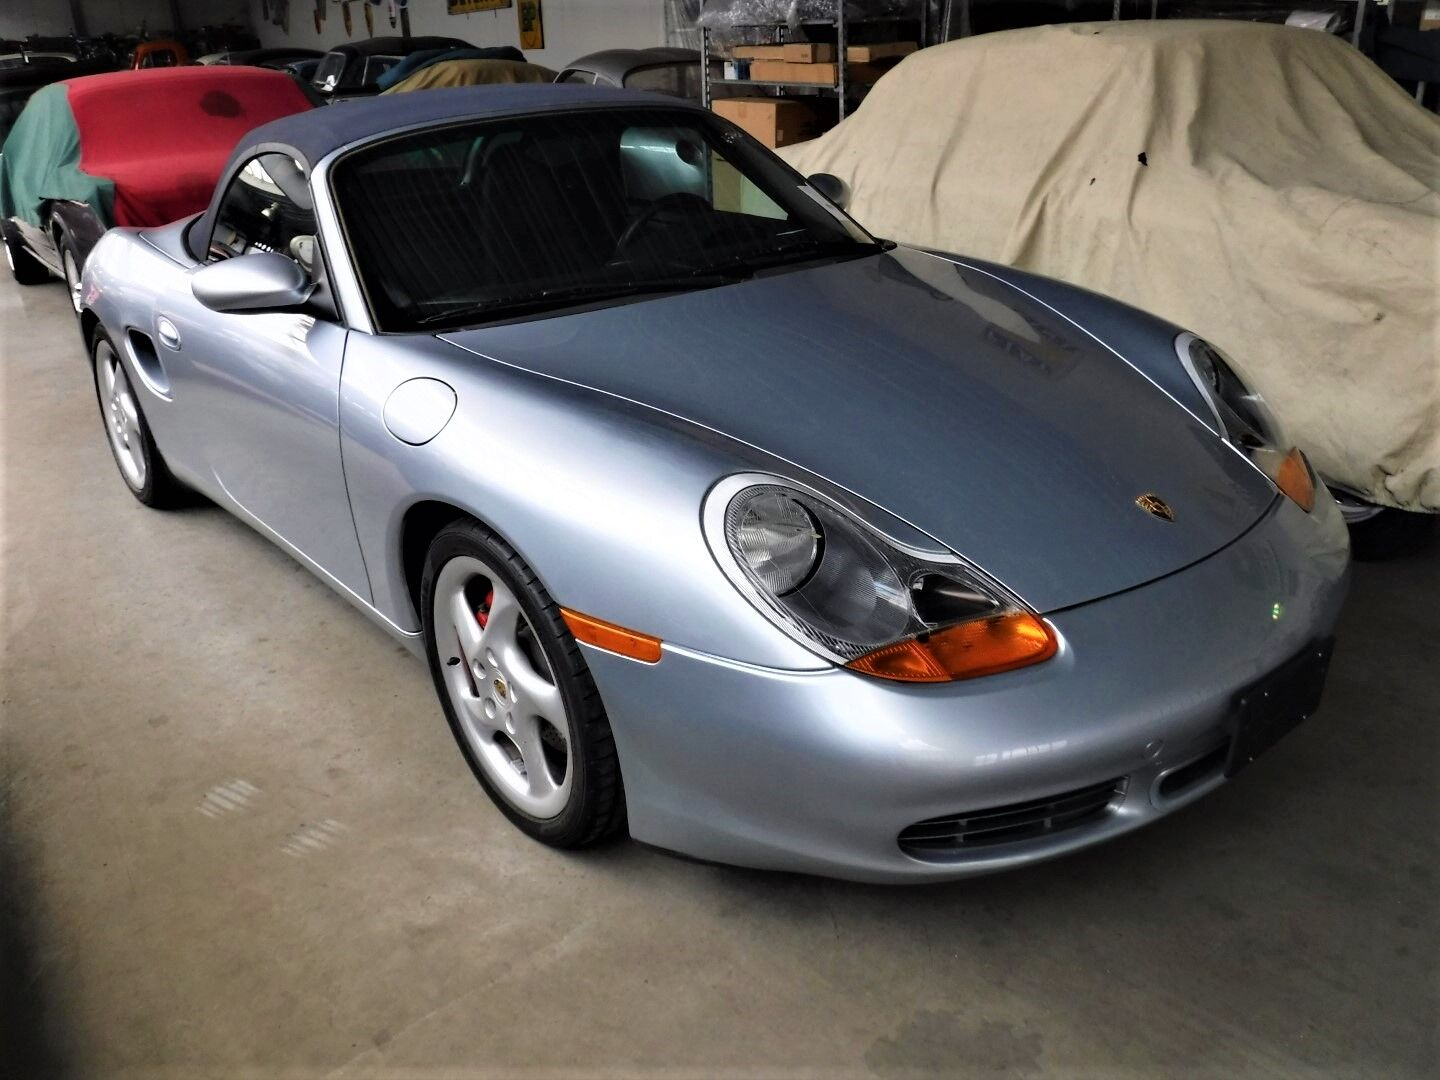 Porsche Boxster S from 2001